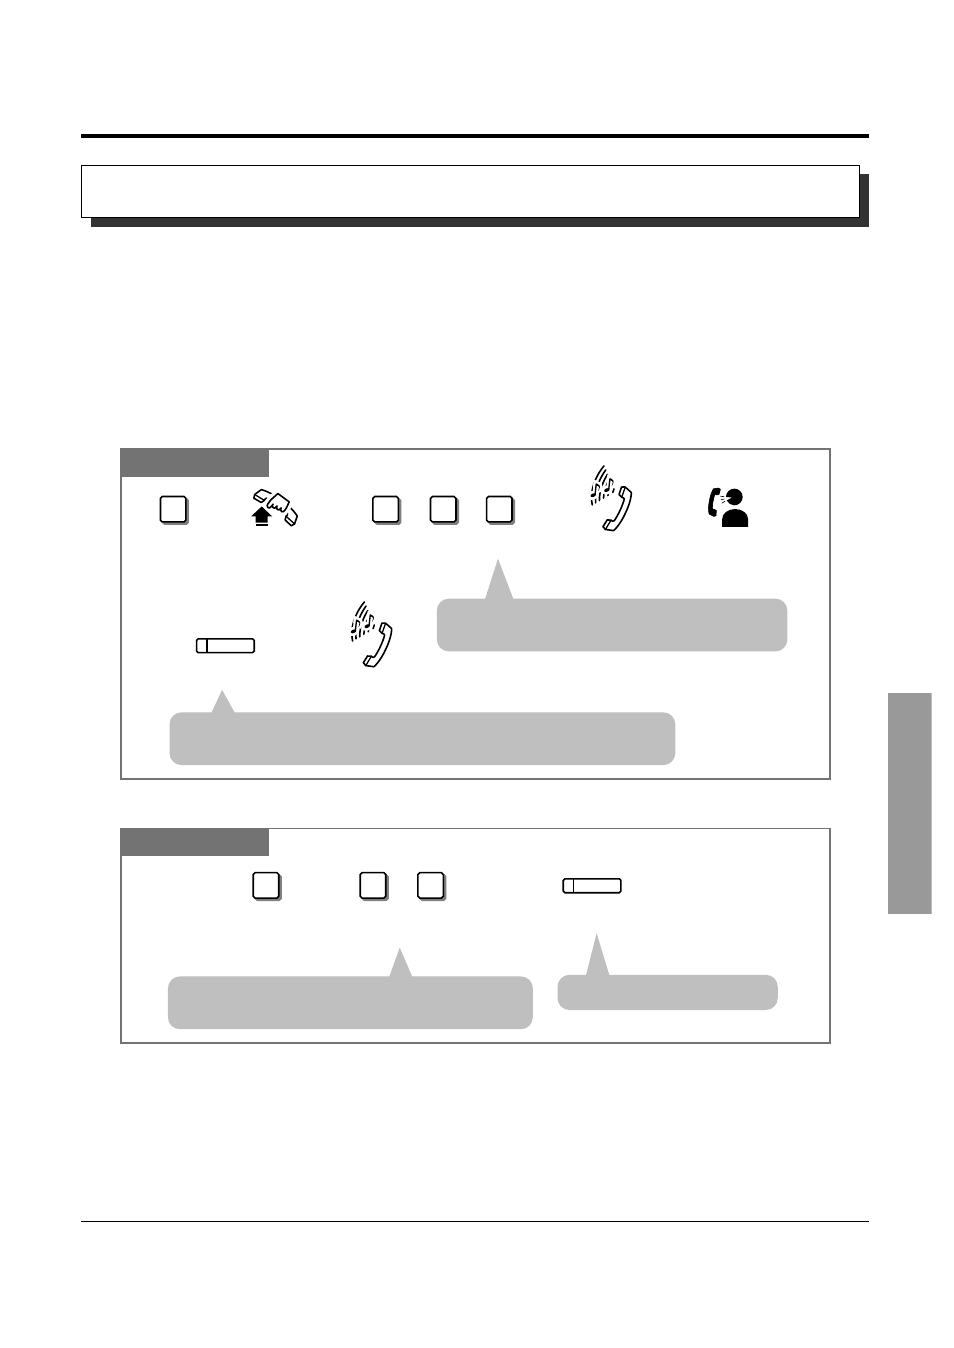 8 operator manager service features outgoing message ogm rh manualsdir com panasonic kx-ta308 installation manual pdf panasonic kx-ta308 user manual pdf